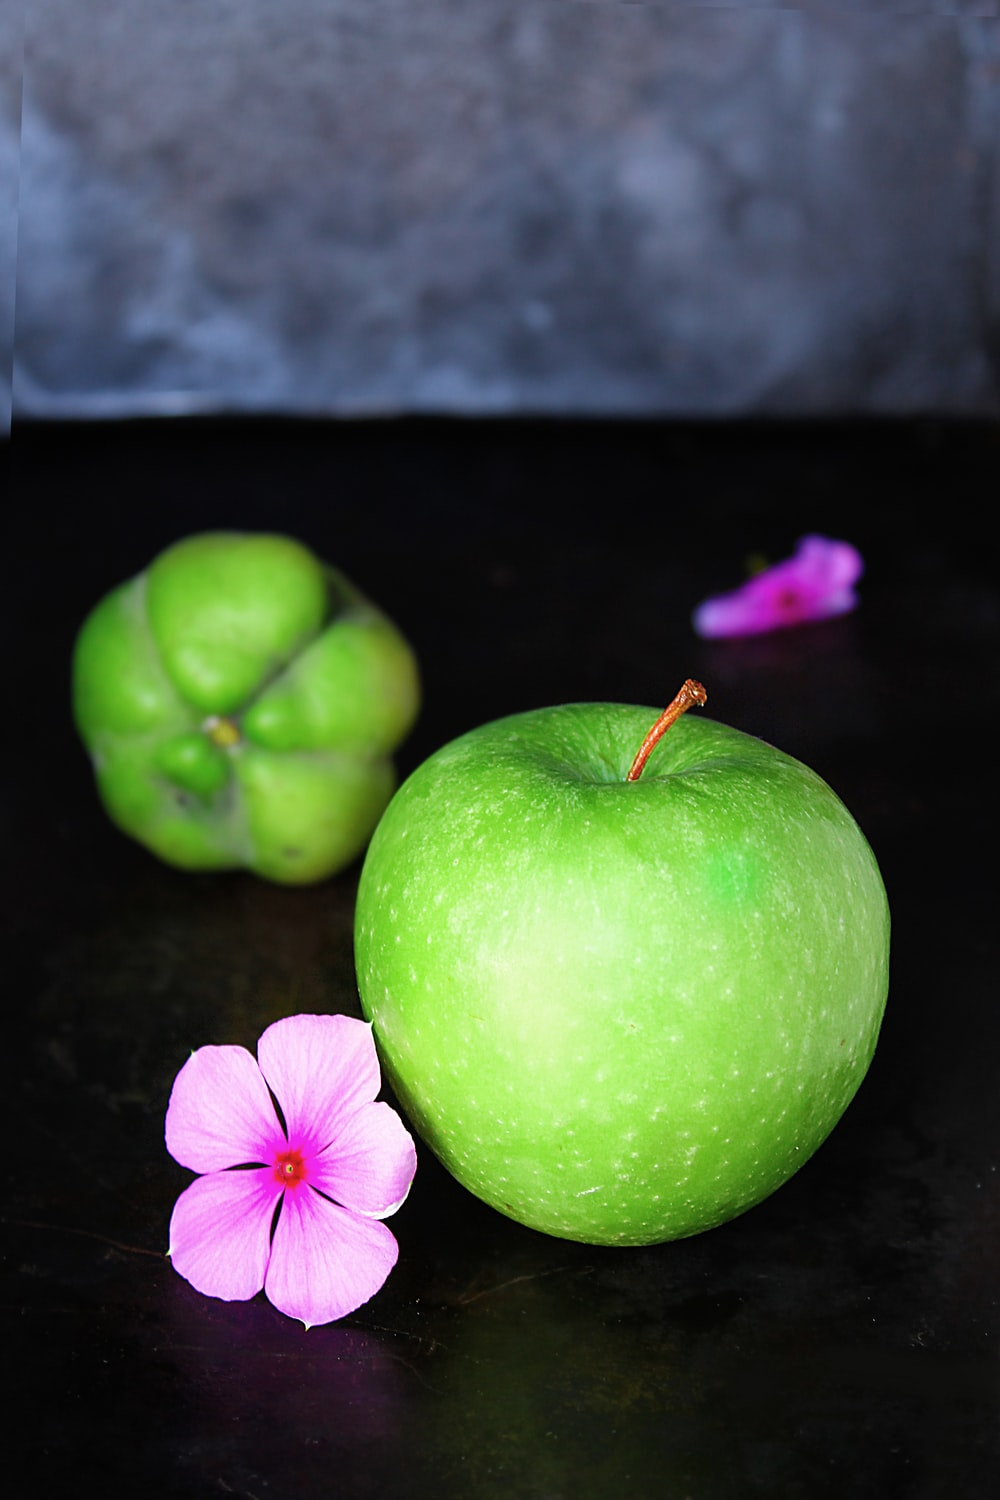 green apple and pink flower